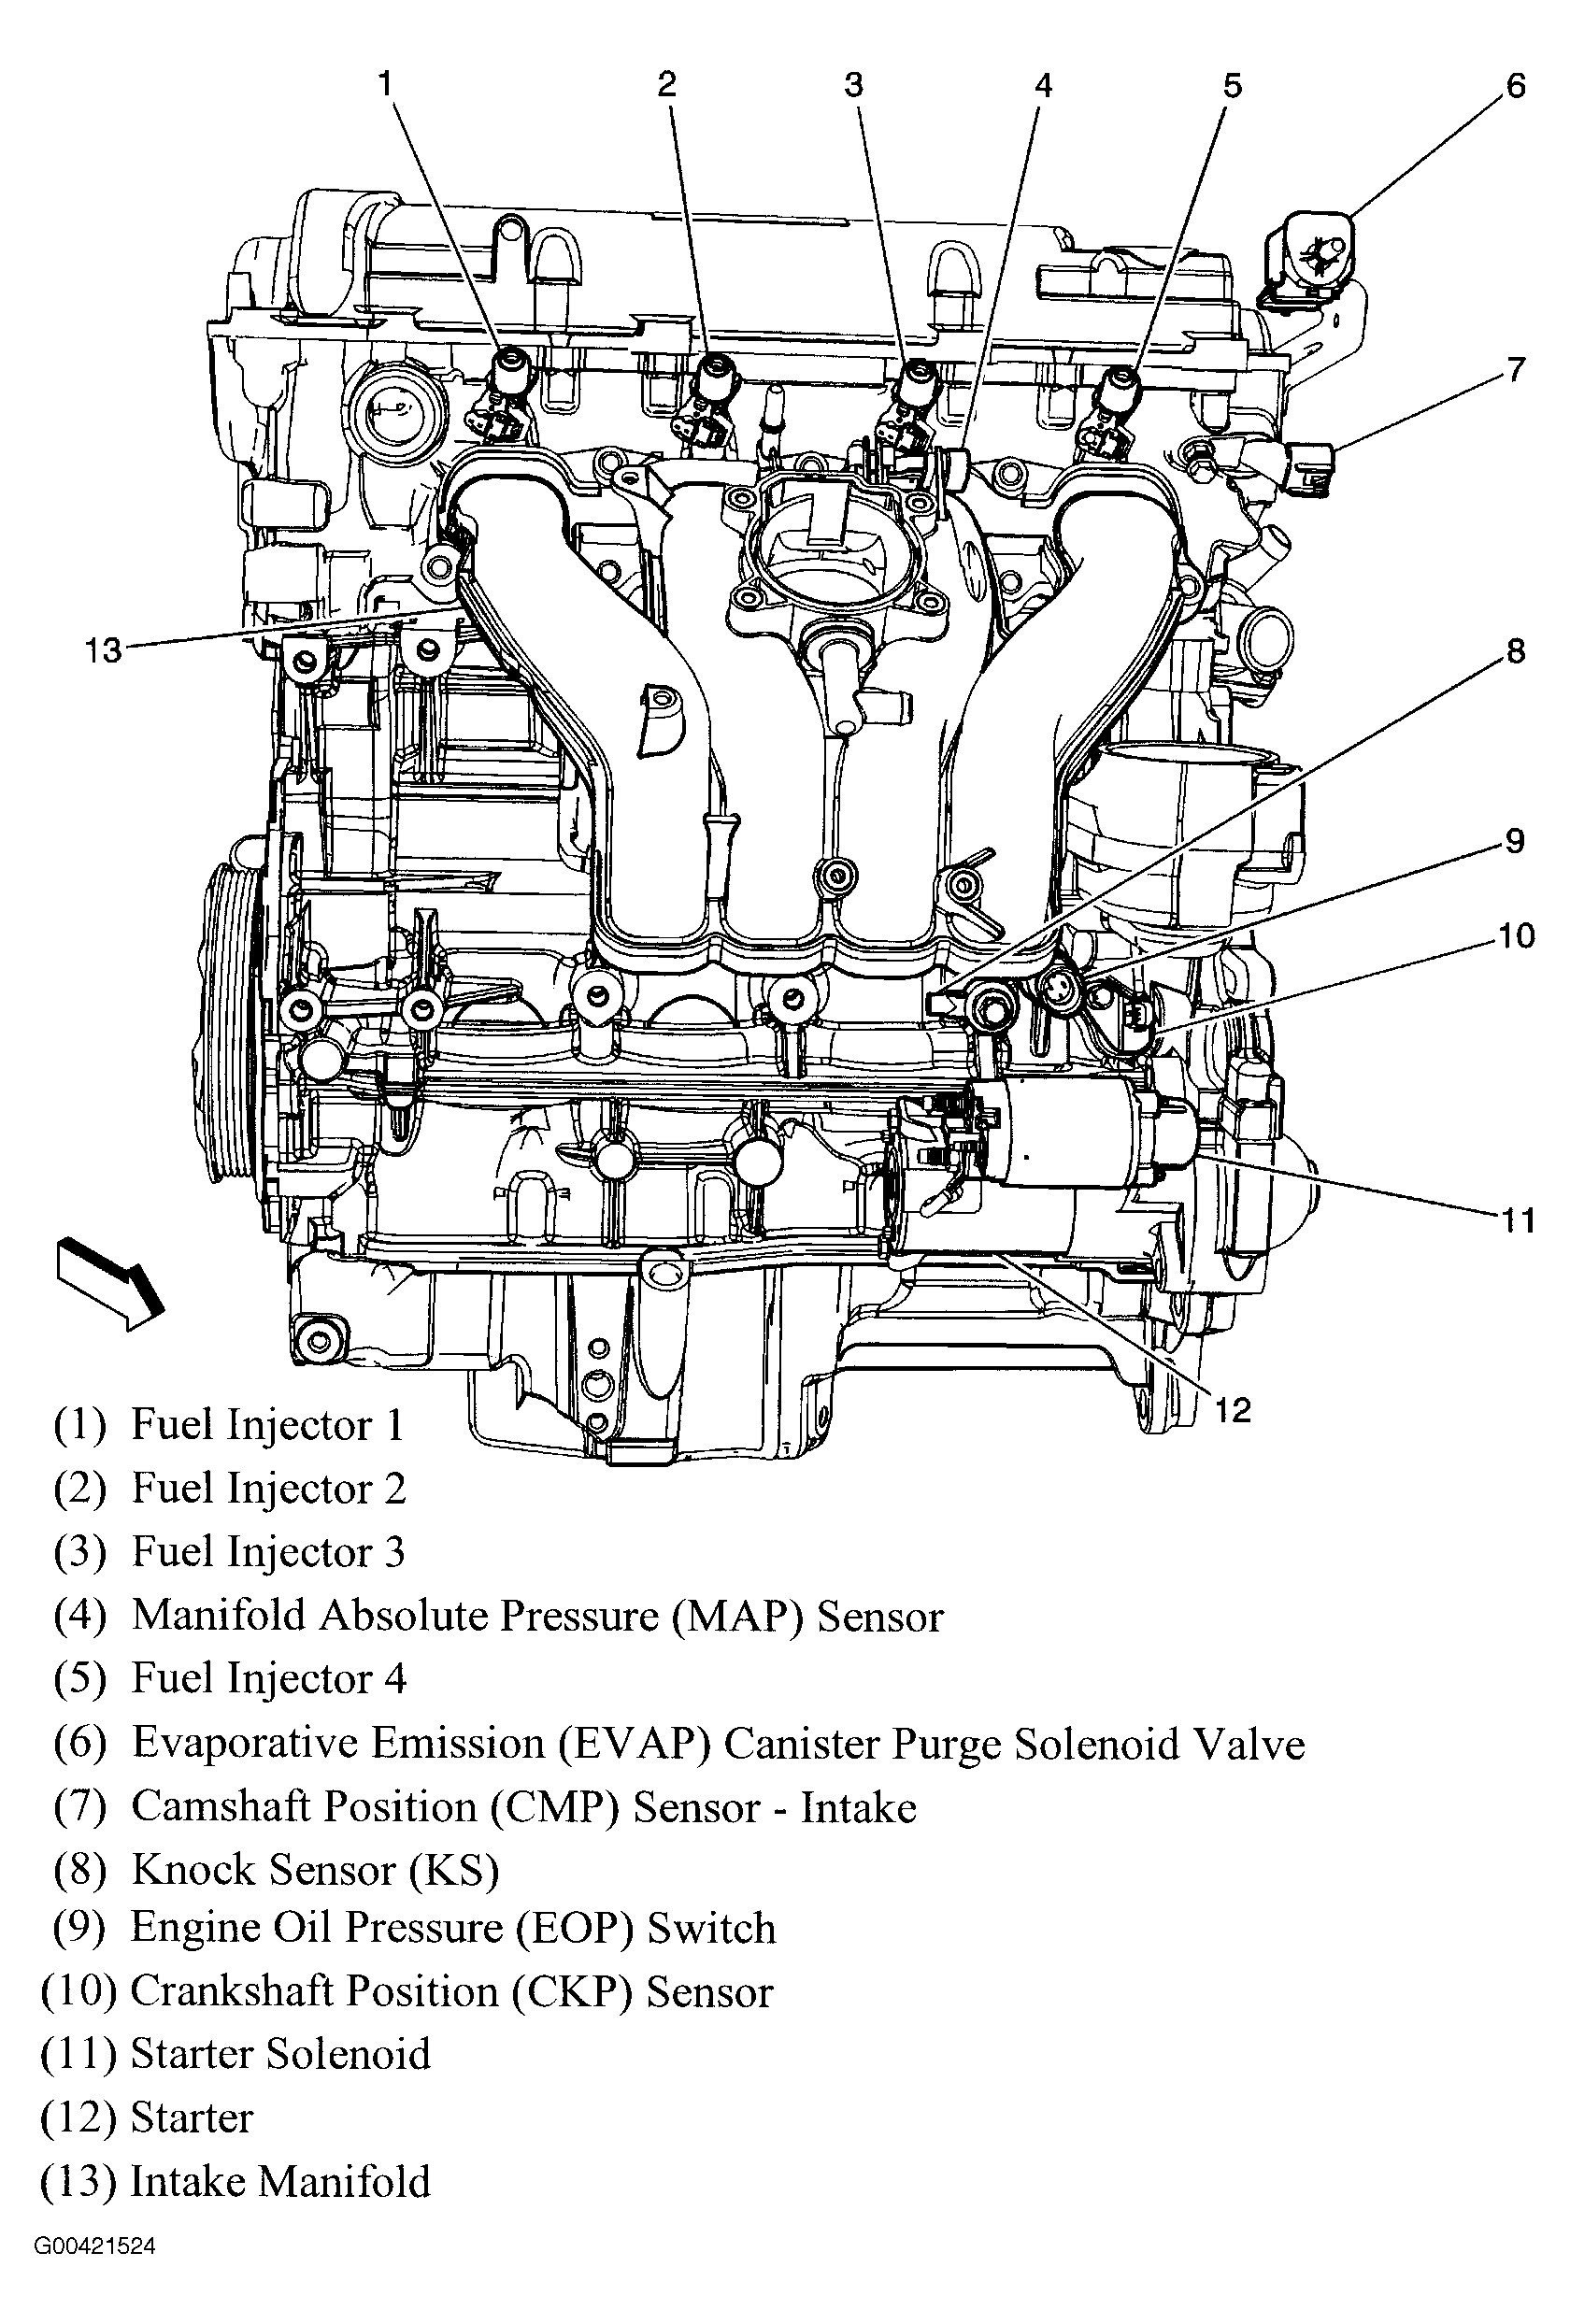 1998 Chevrolet Cavalier 2 2 Liter Engine Diagram Wiring Diagram Long Pair Long Pair Zaafran It